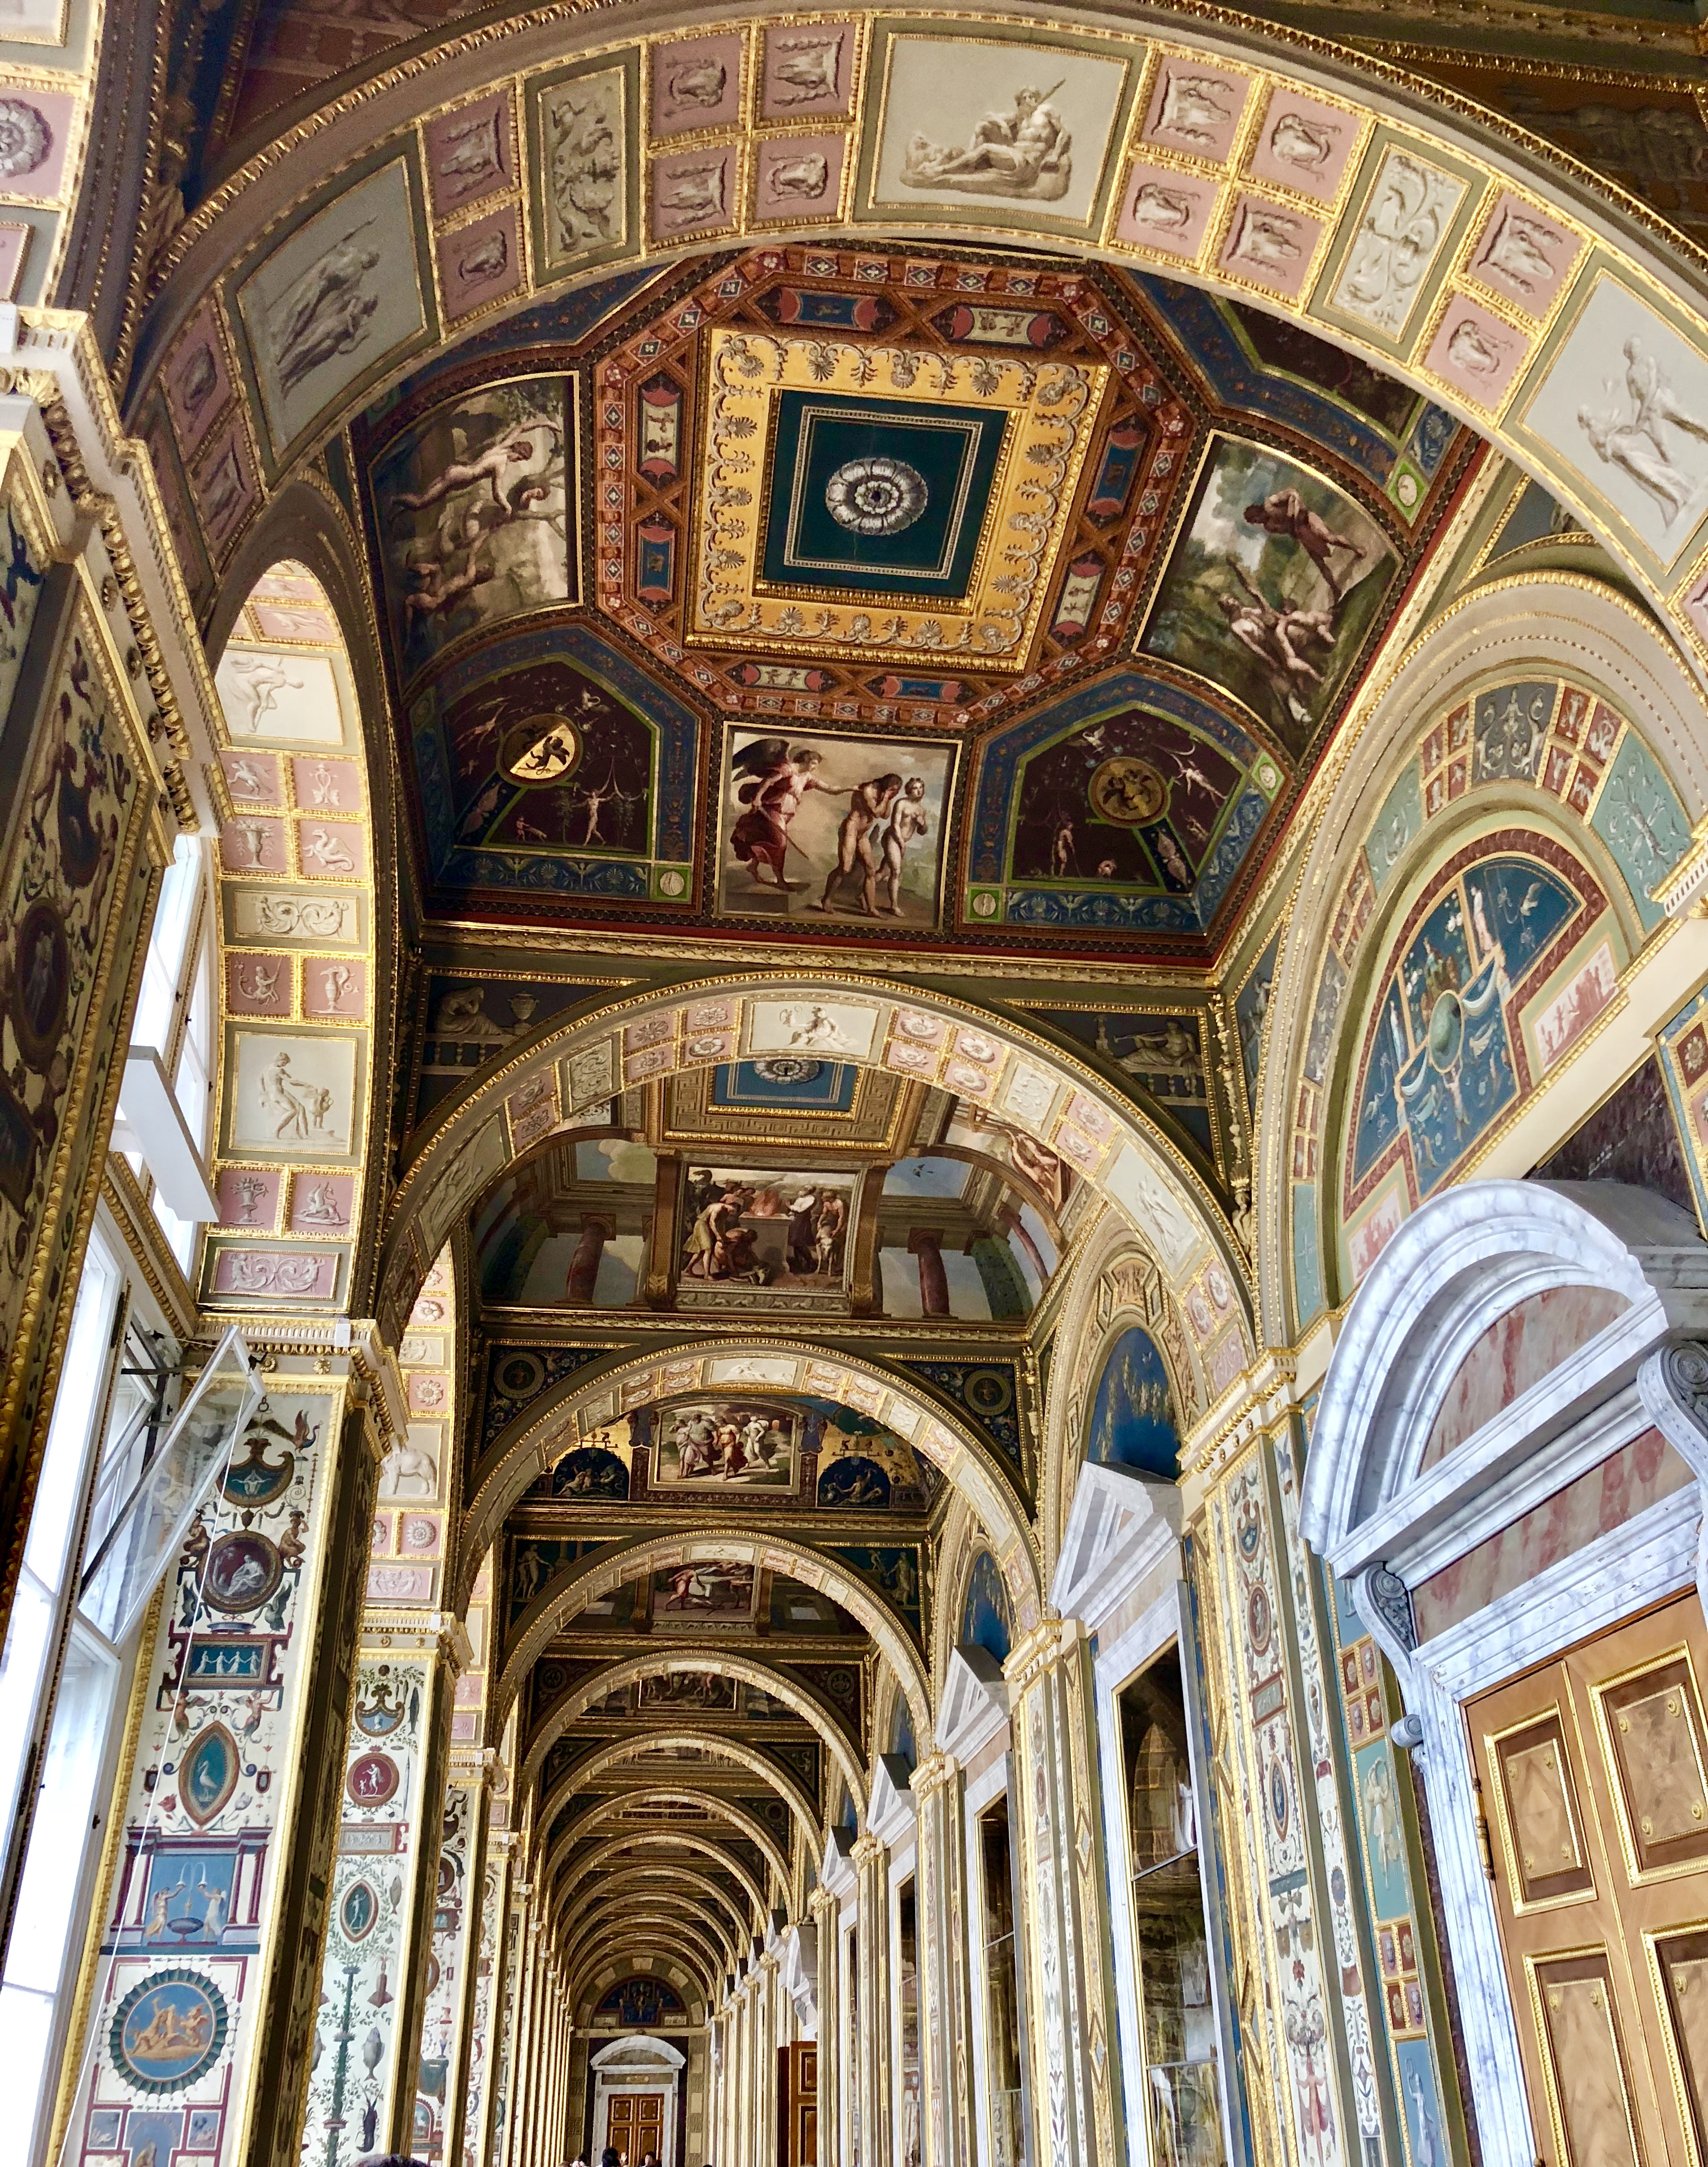 St Petersburgh, Russia - What to see in two days - Hermitage - Giddy Guest